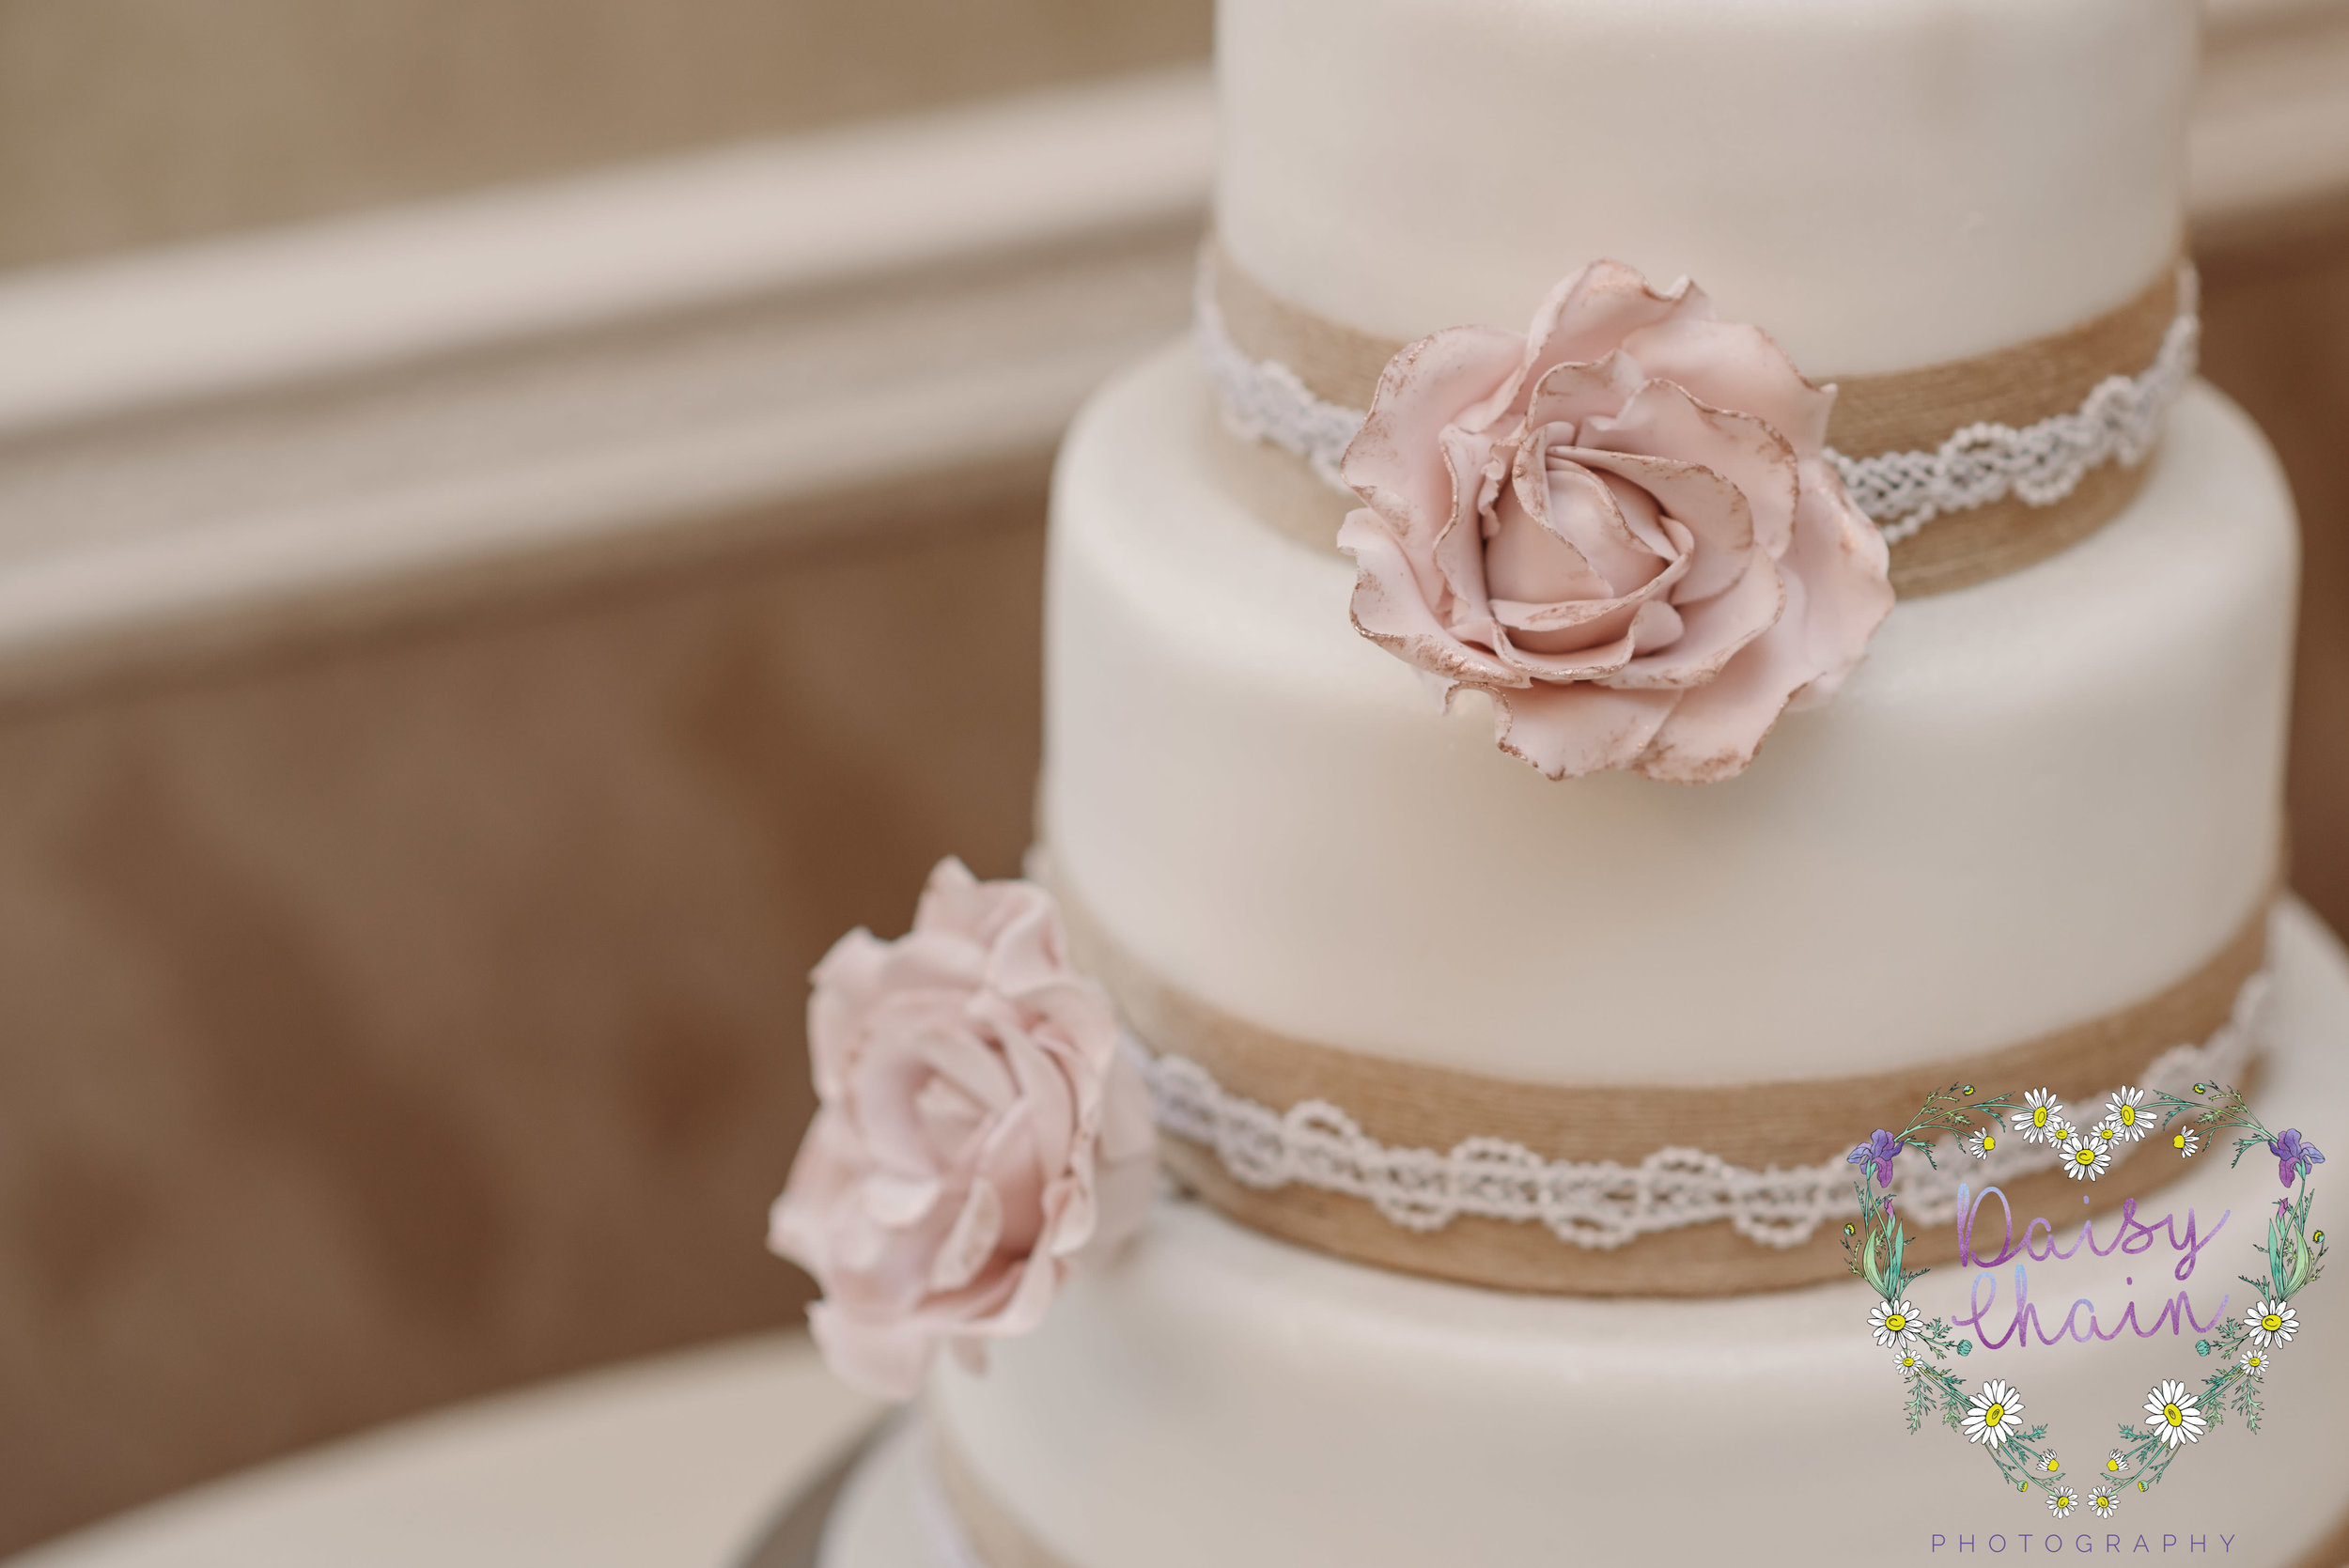 wedding cake and hand made flowers